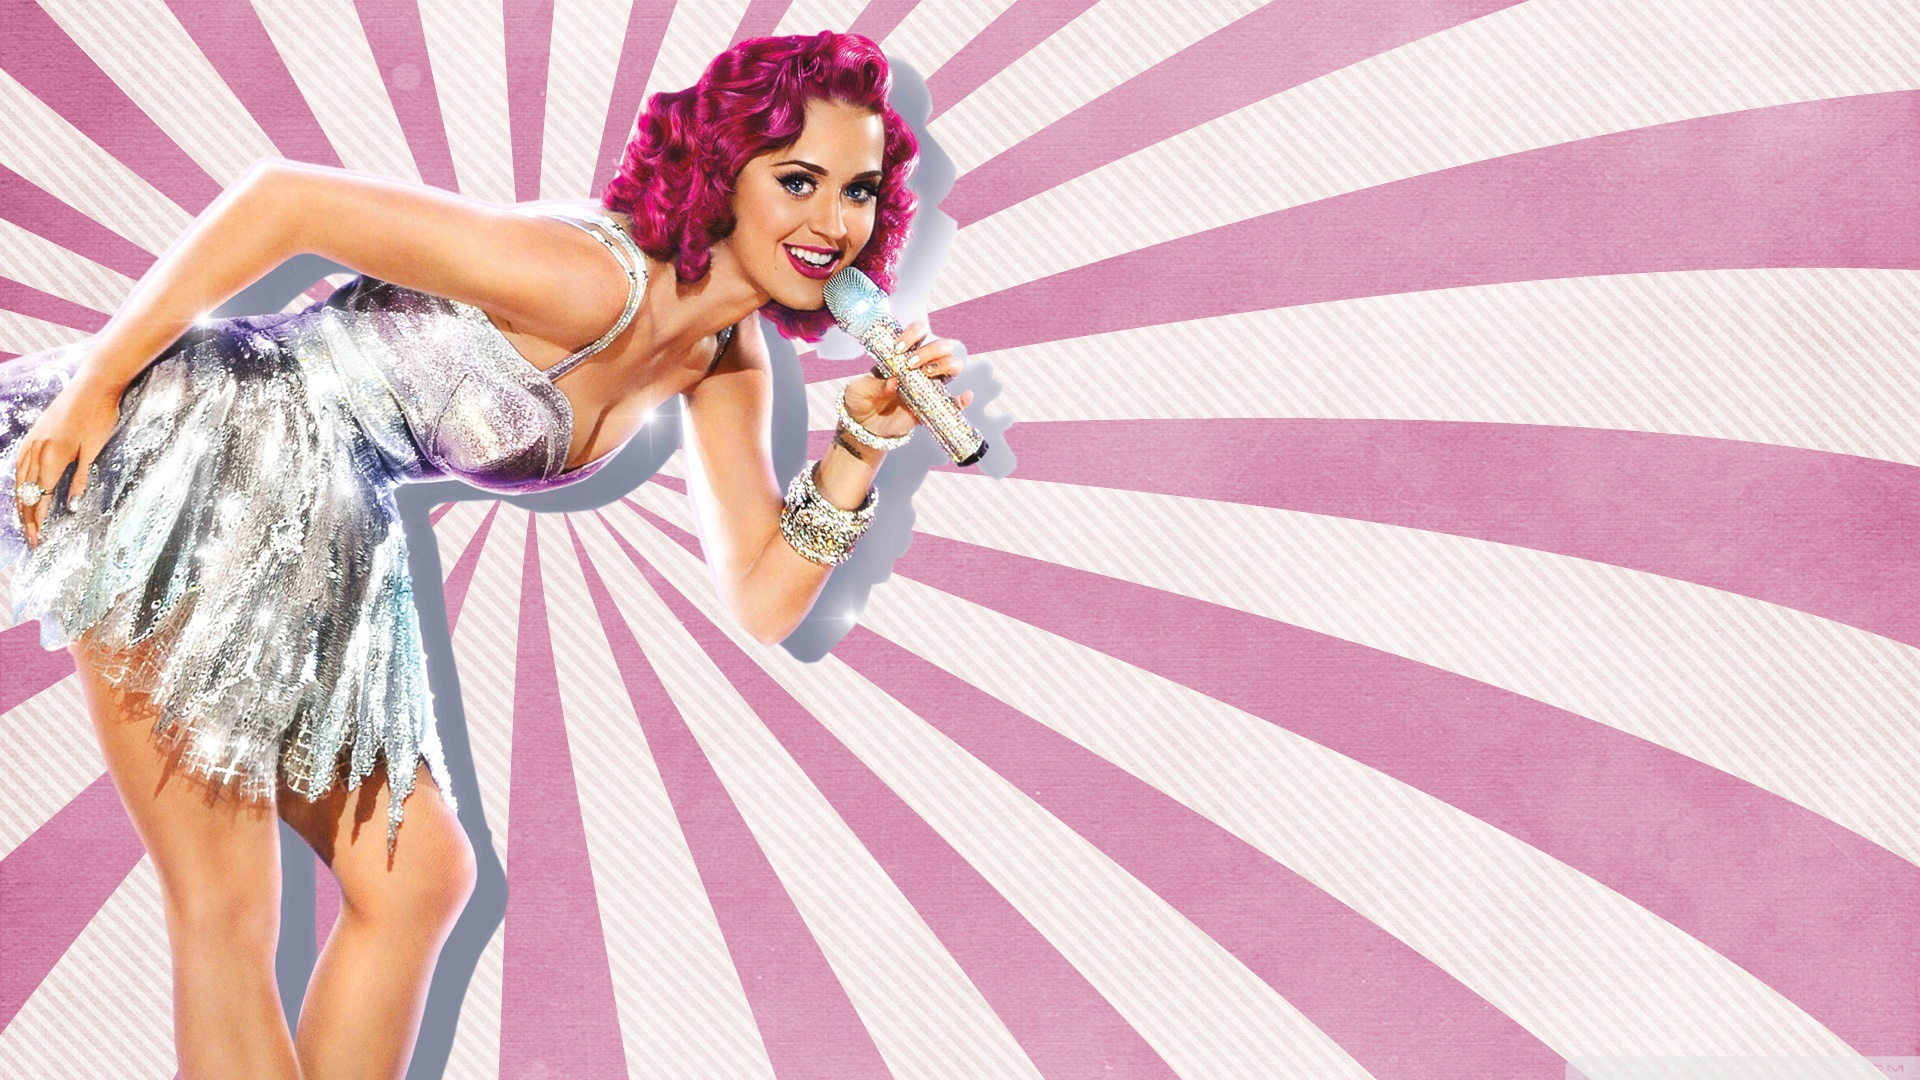 Bettie Page Pin Up Girl Wallpaper Katy Perry Pin Up Style 4k Hd Desktop Wallpaper For 4k